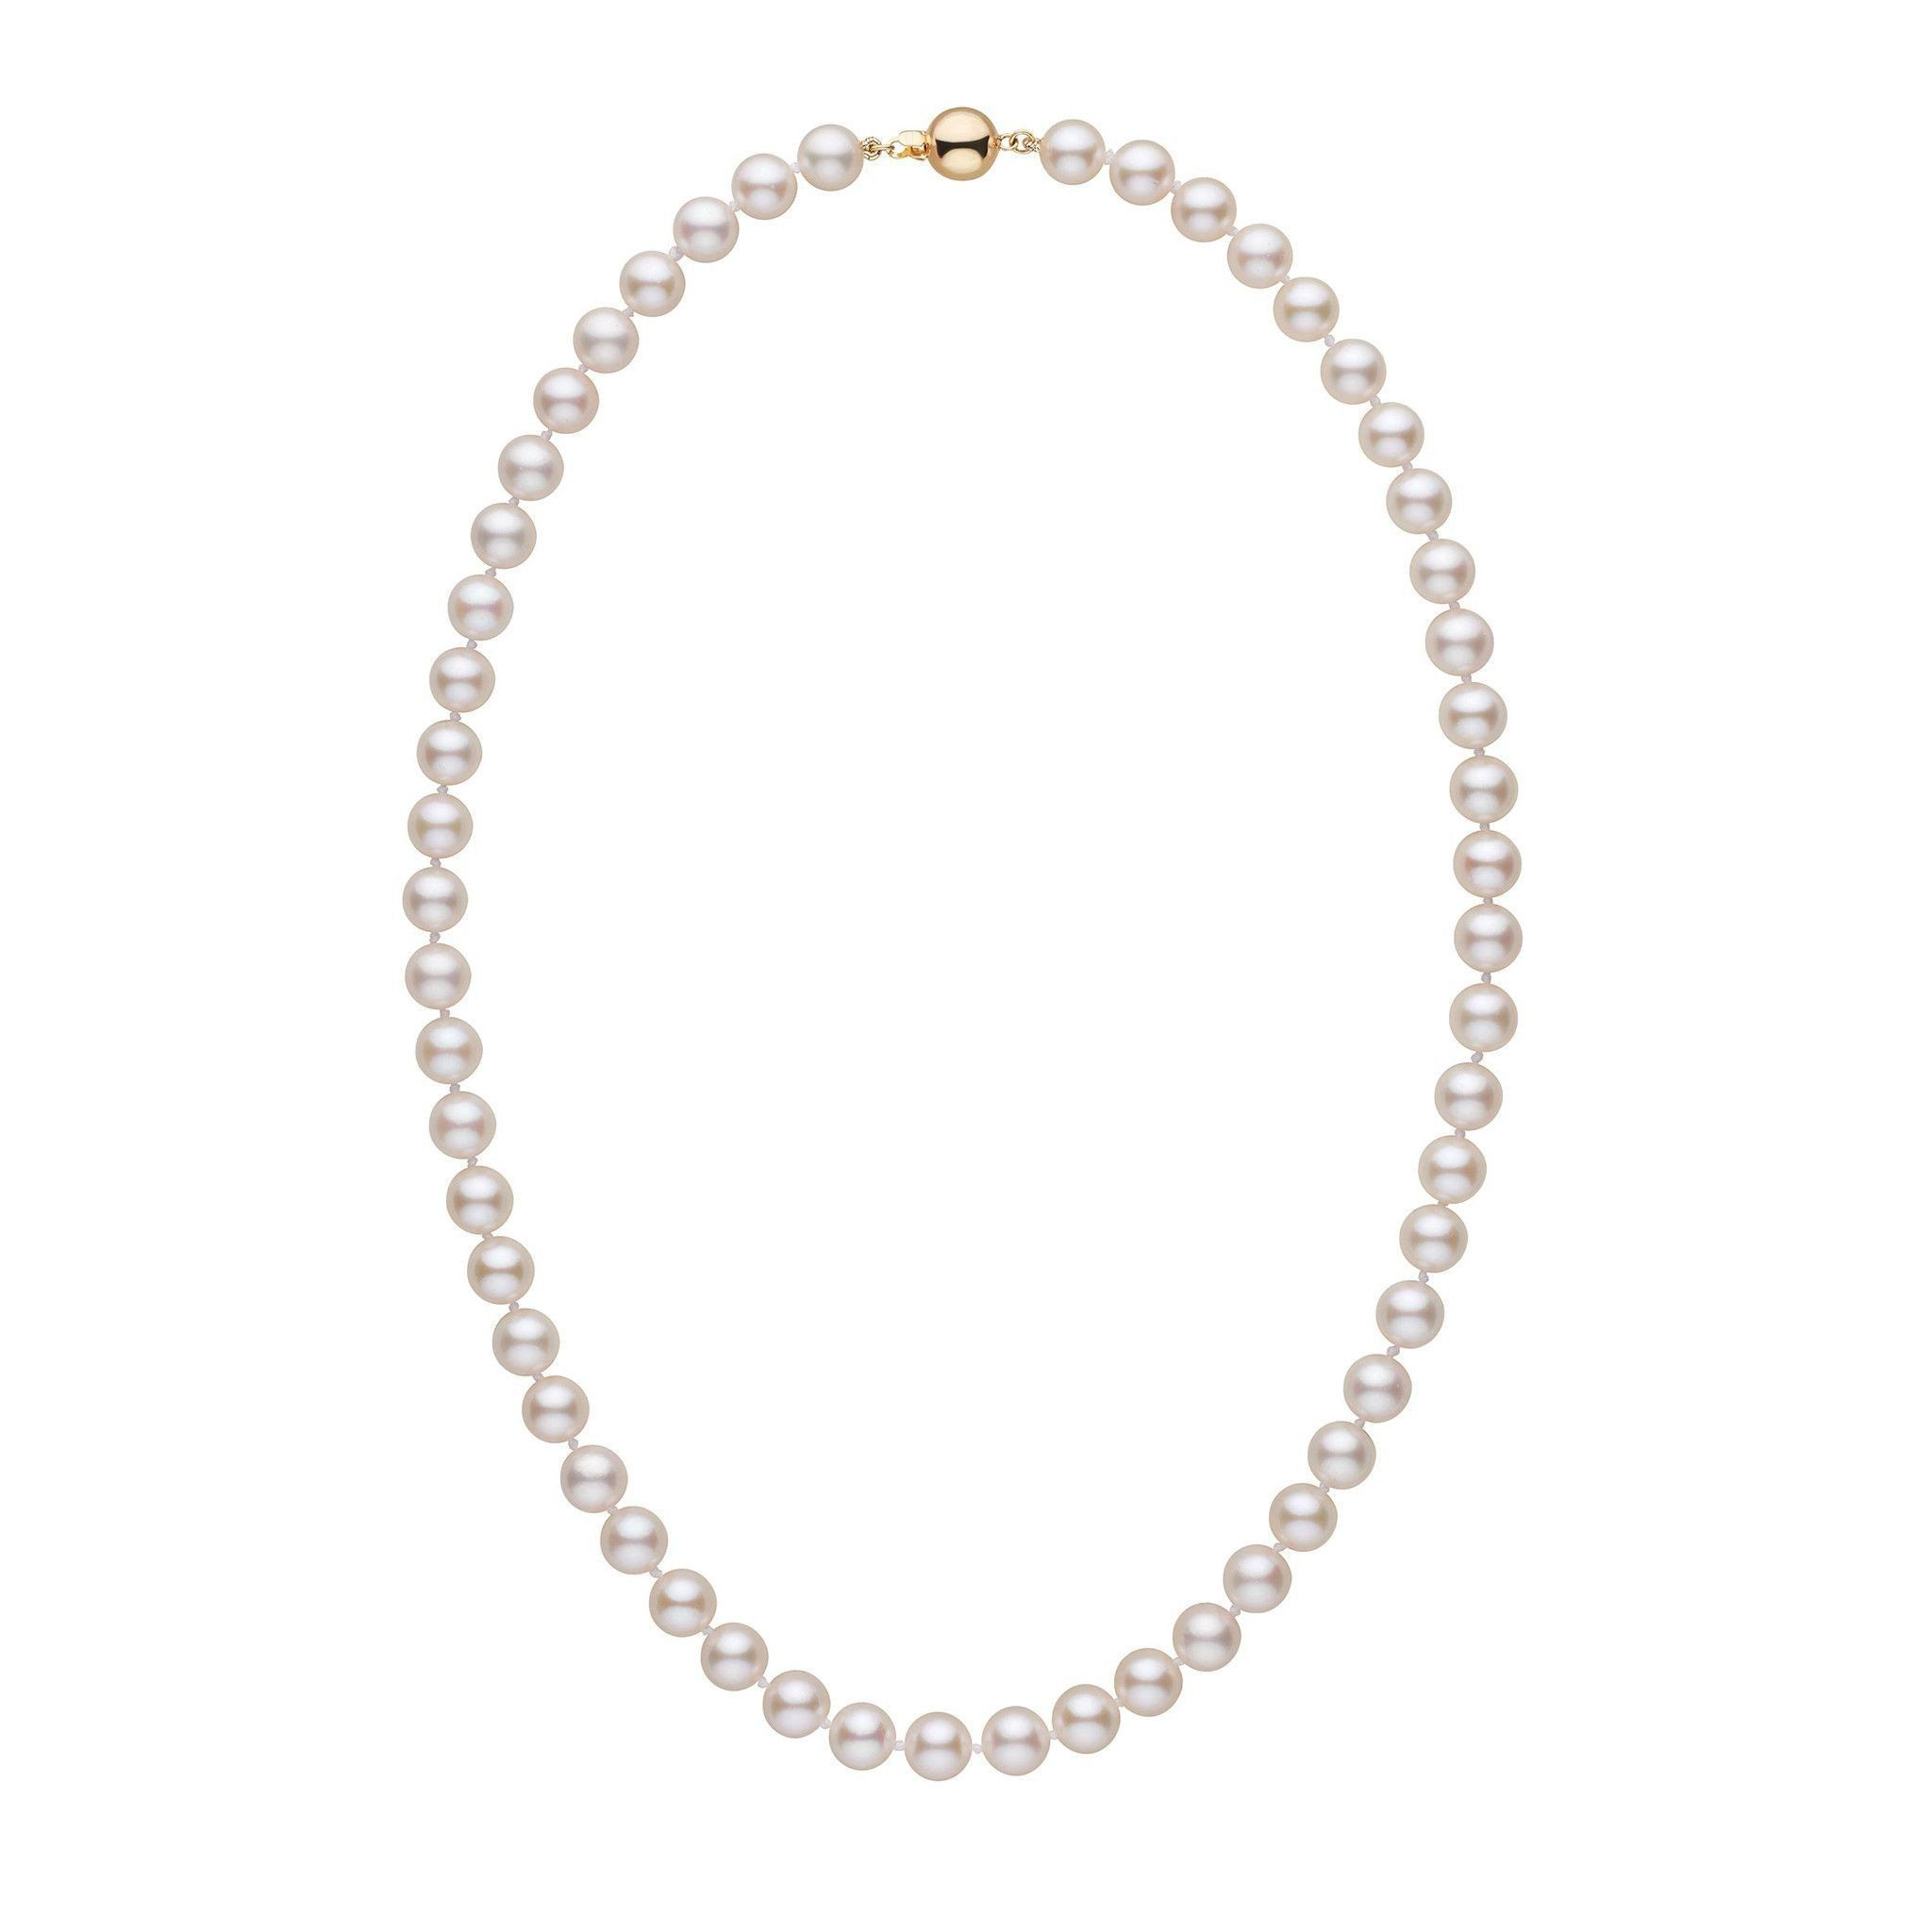 7.0-7.5 mm White Akoya 18 inch AA+ Pearl Necklace